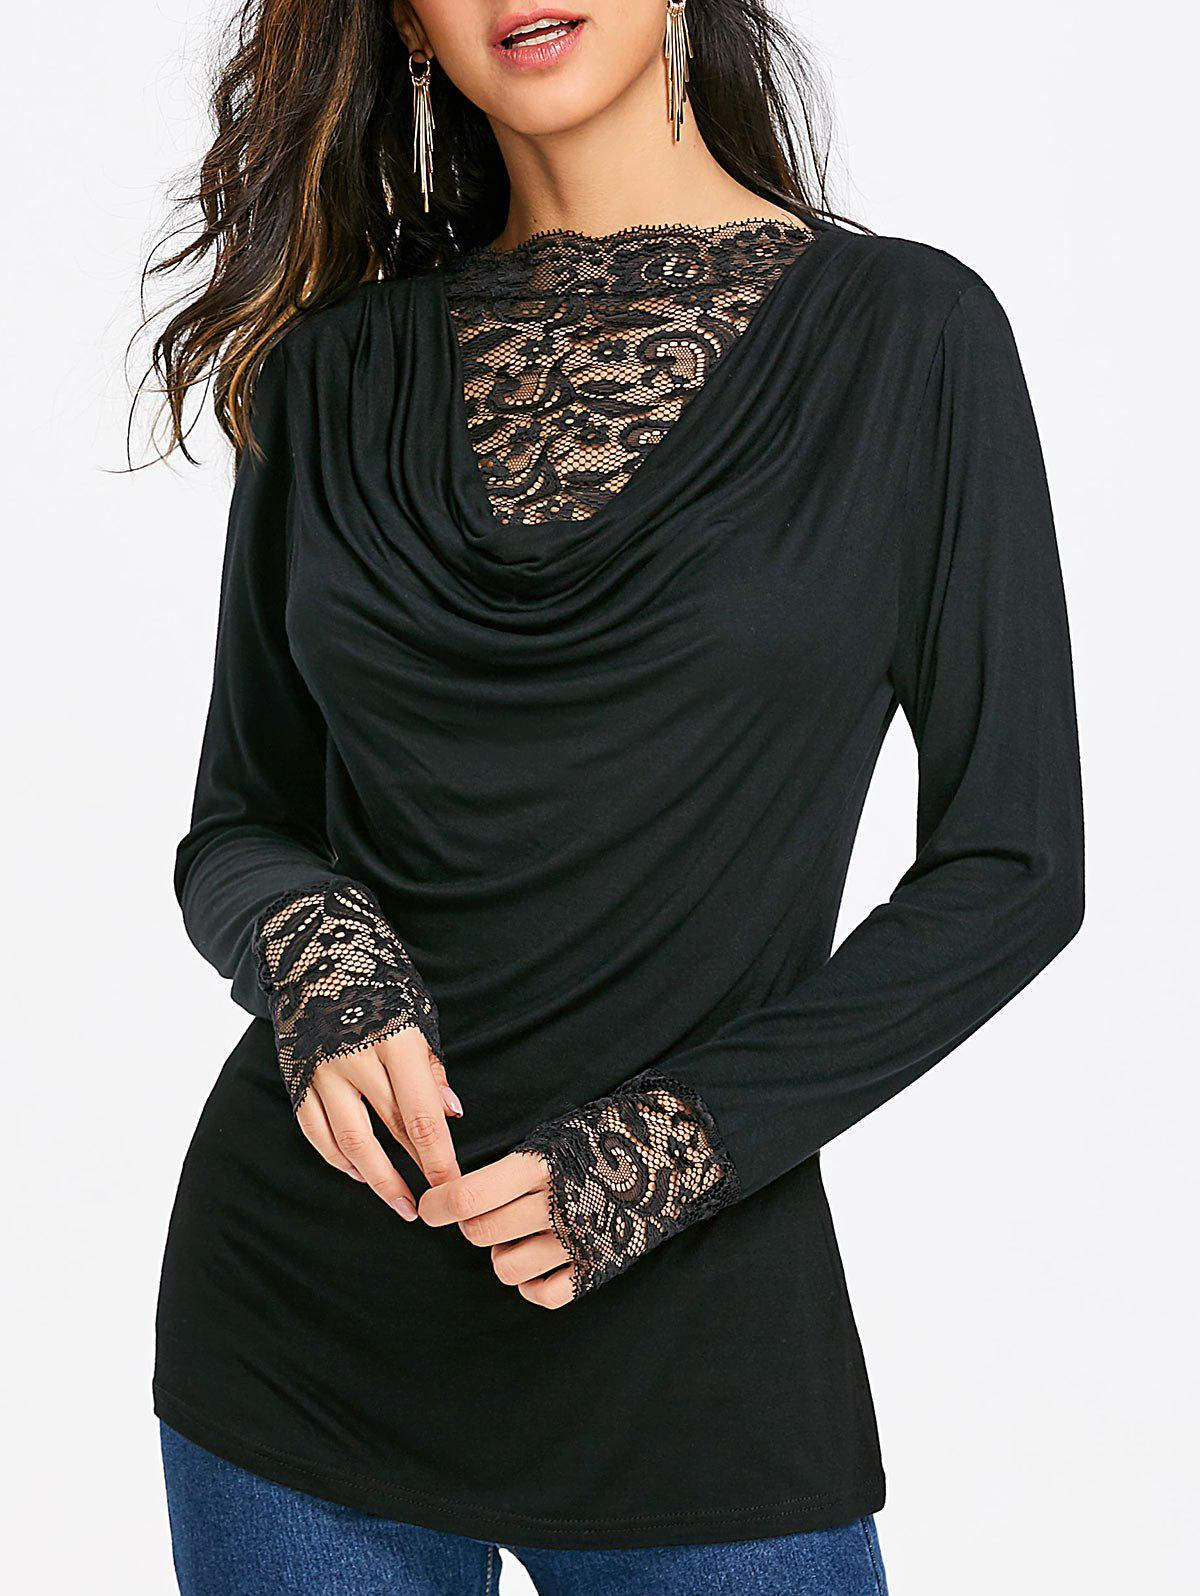 Lace Insert Heap Front Long Sleeve T-shirt - BLACK L